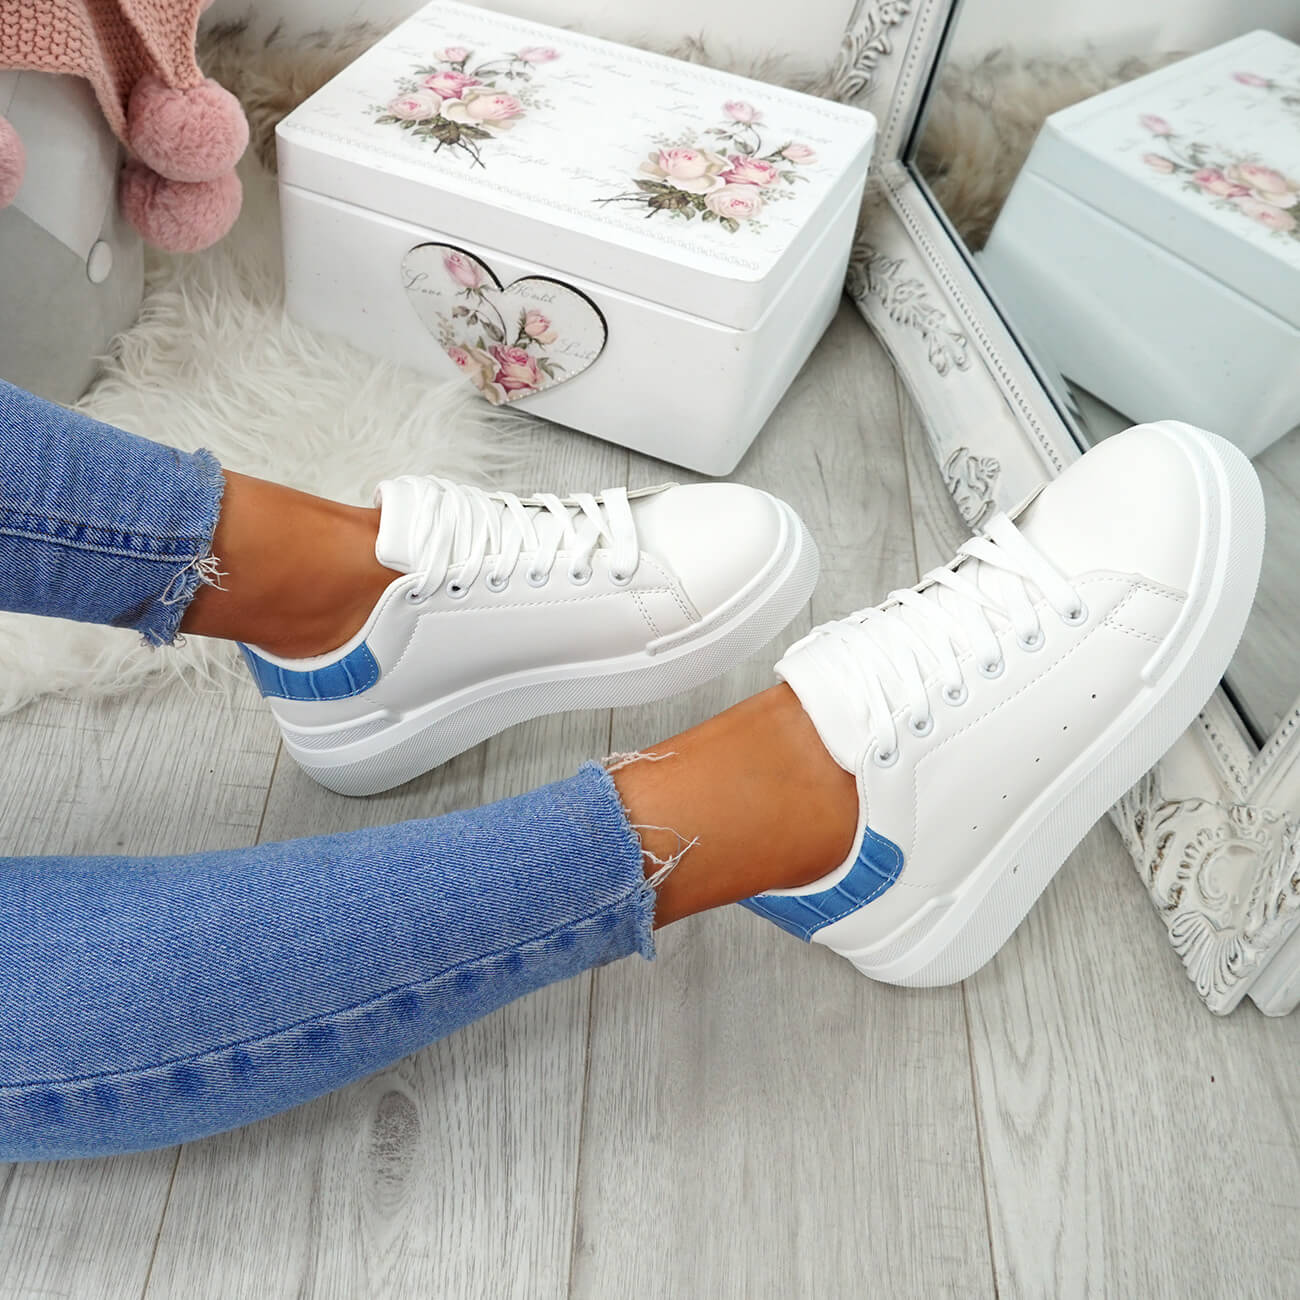 WOMENS-LADIES-LACE-UP-PLIMSOLL-SNEAKERS-CROC-SNAKE-TRAINERS-CASUAL-SHOES-SIZE thumbnail 53